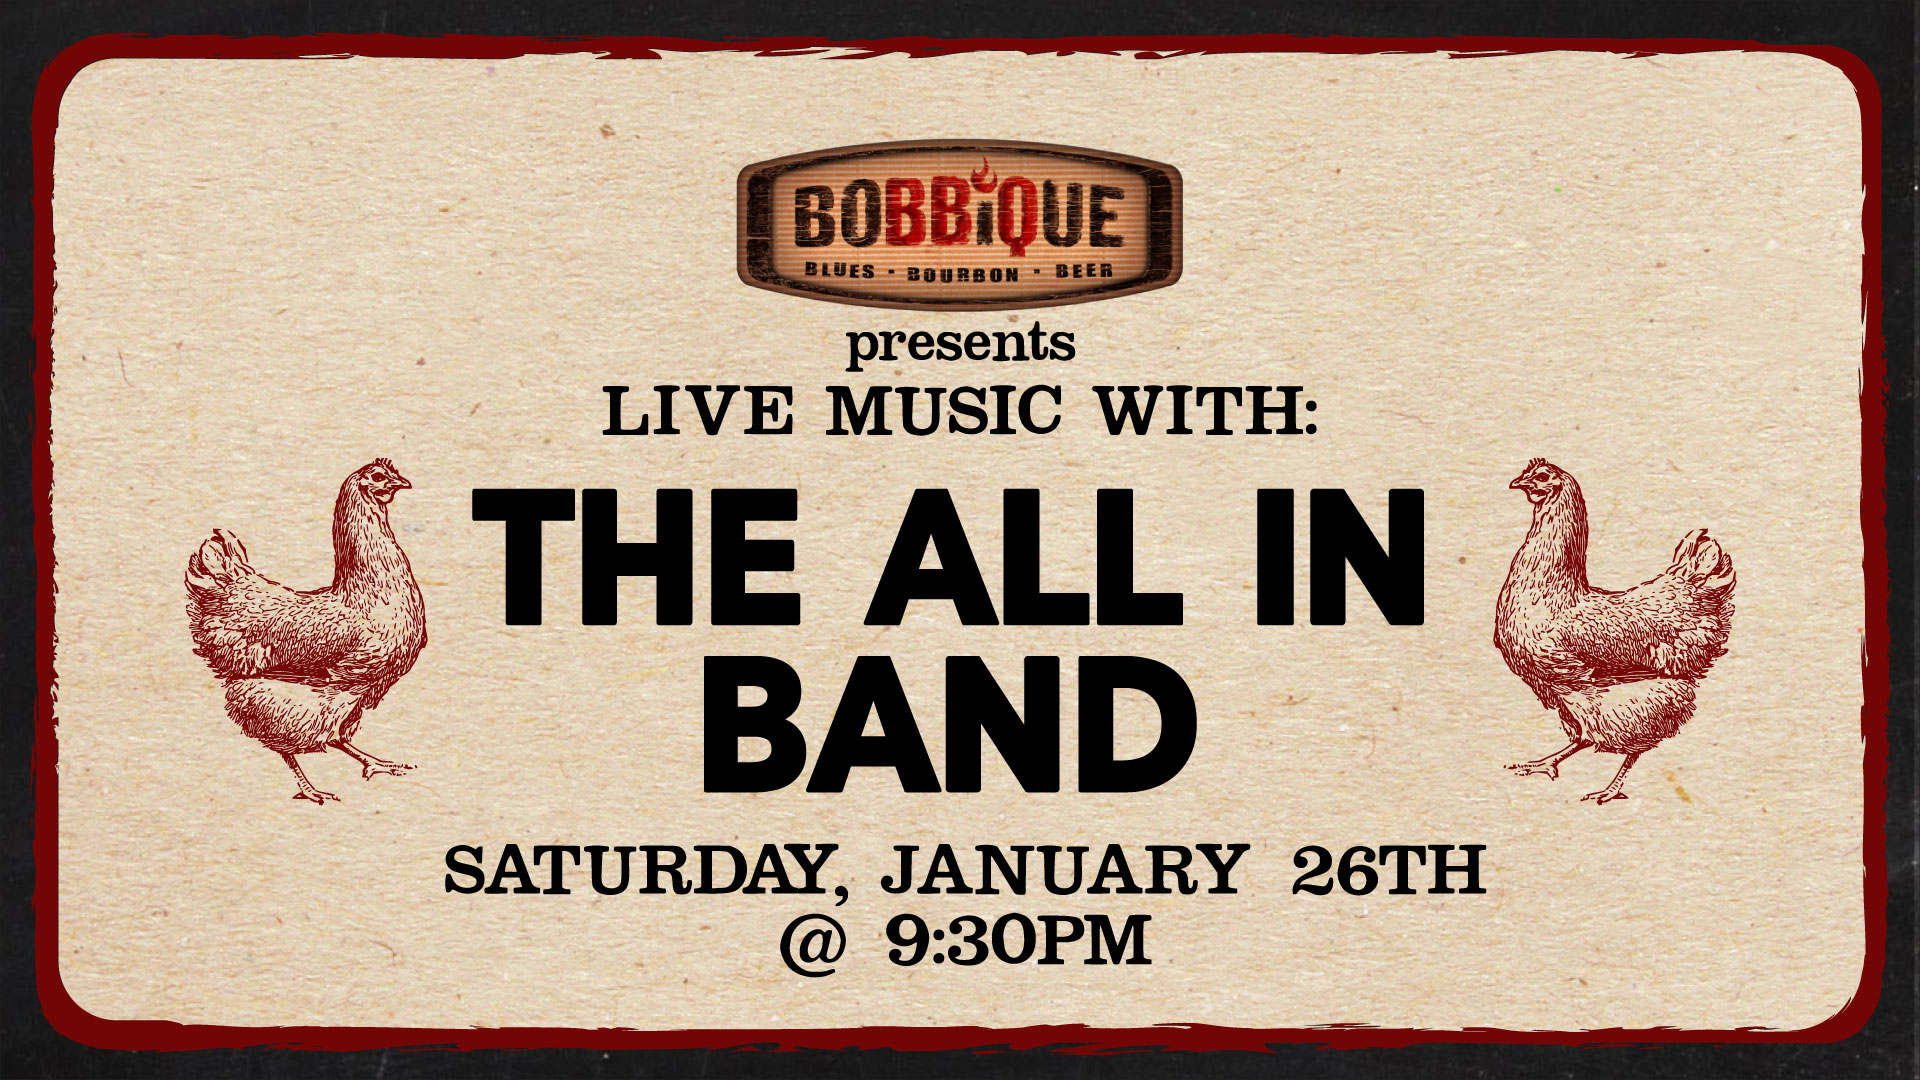 The All in Band